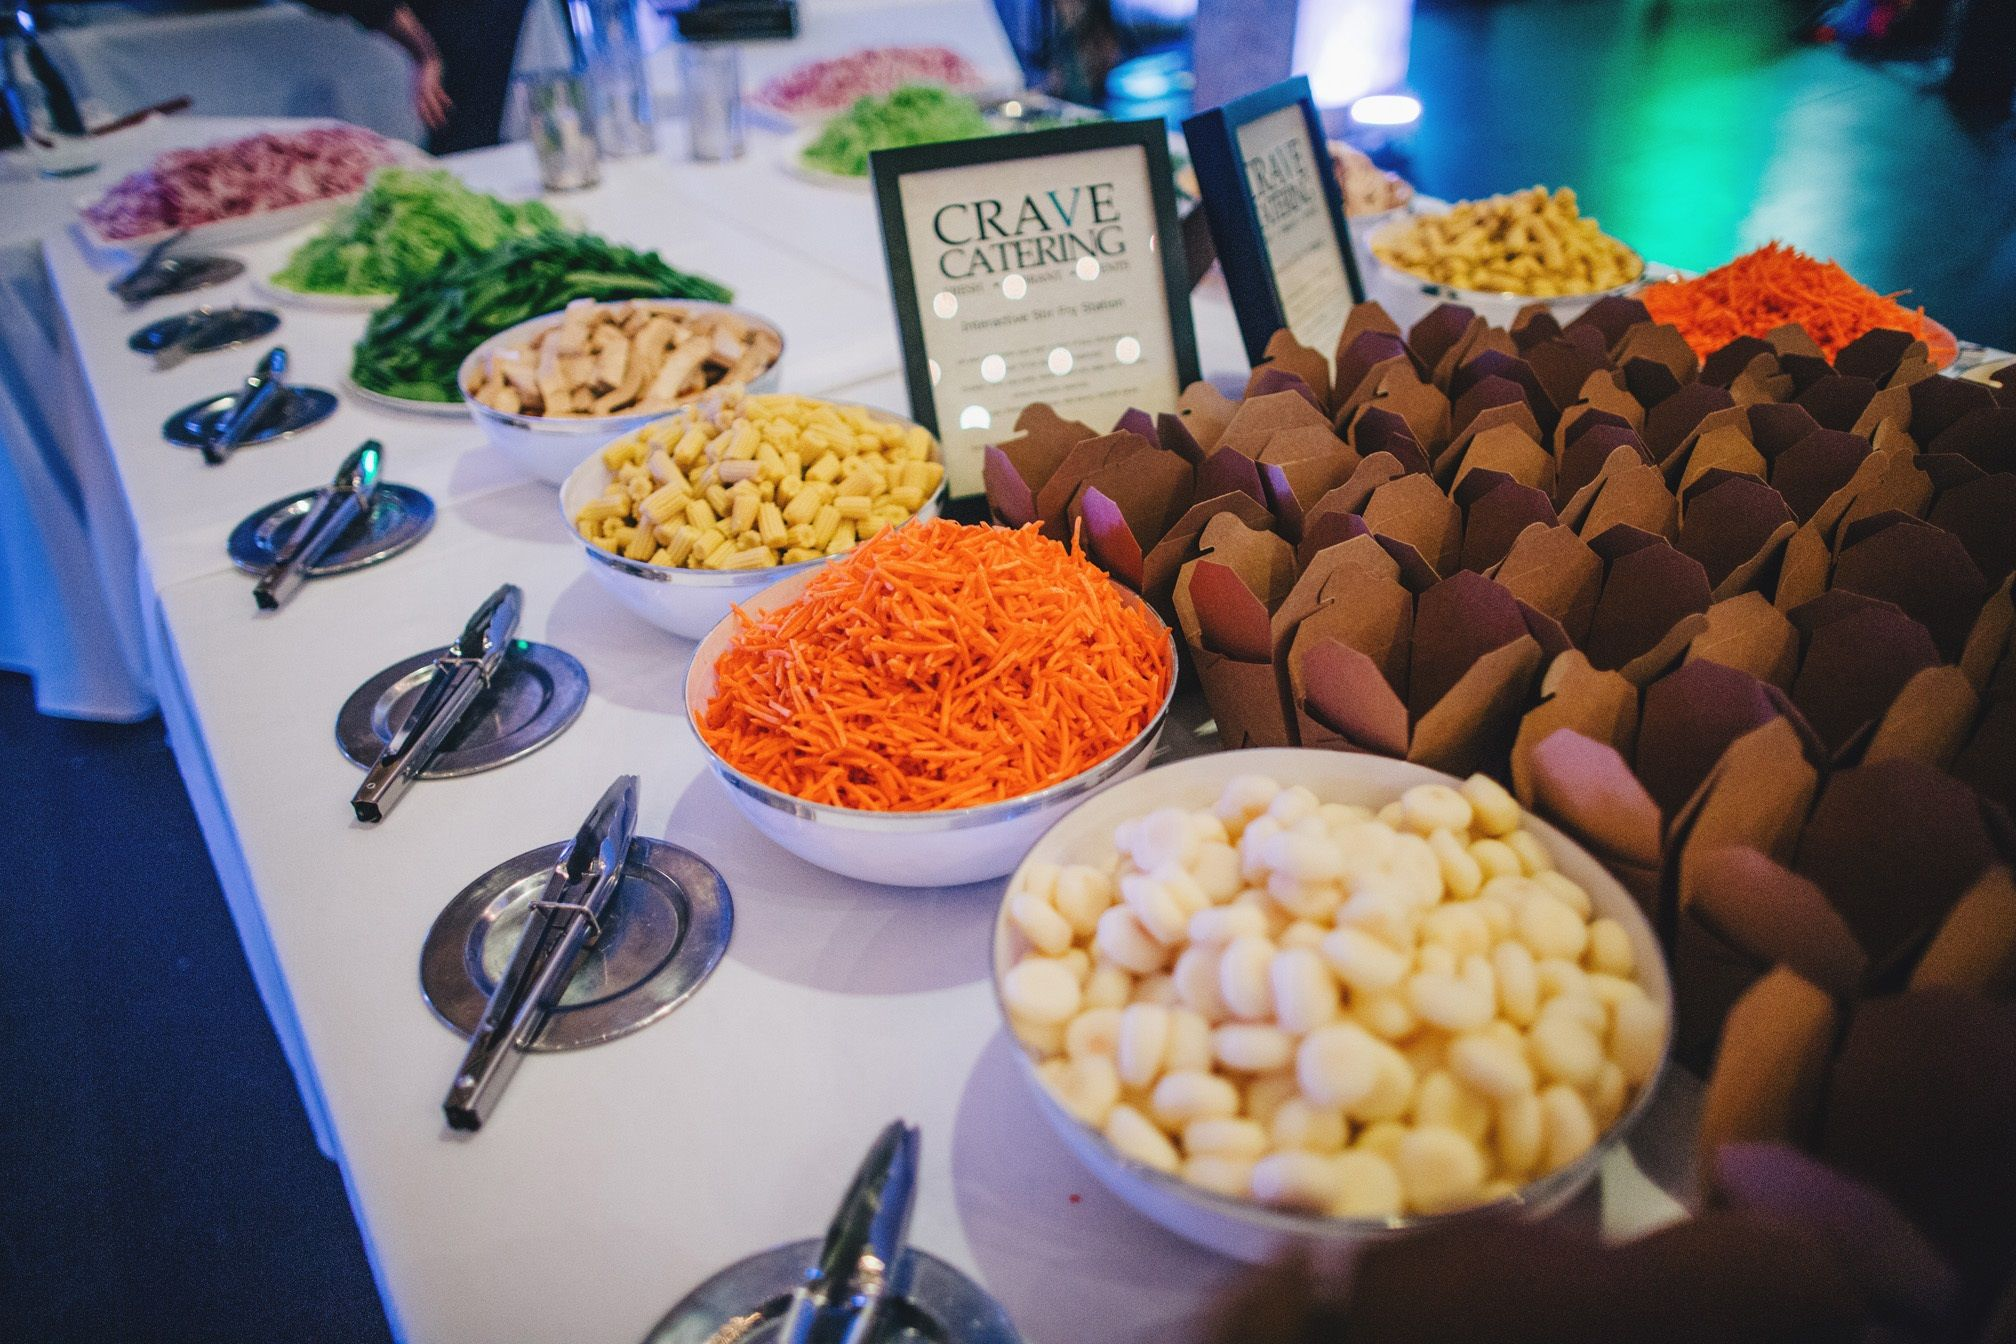 Crave Catering S Interactive Wok Station Matt Lien Photography Catering Cravings Food